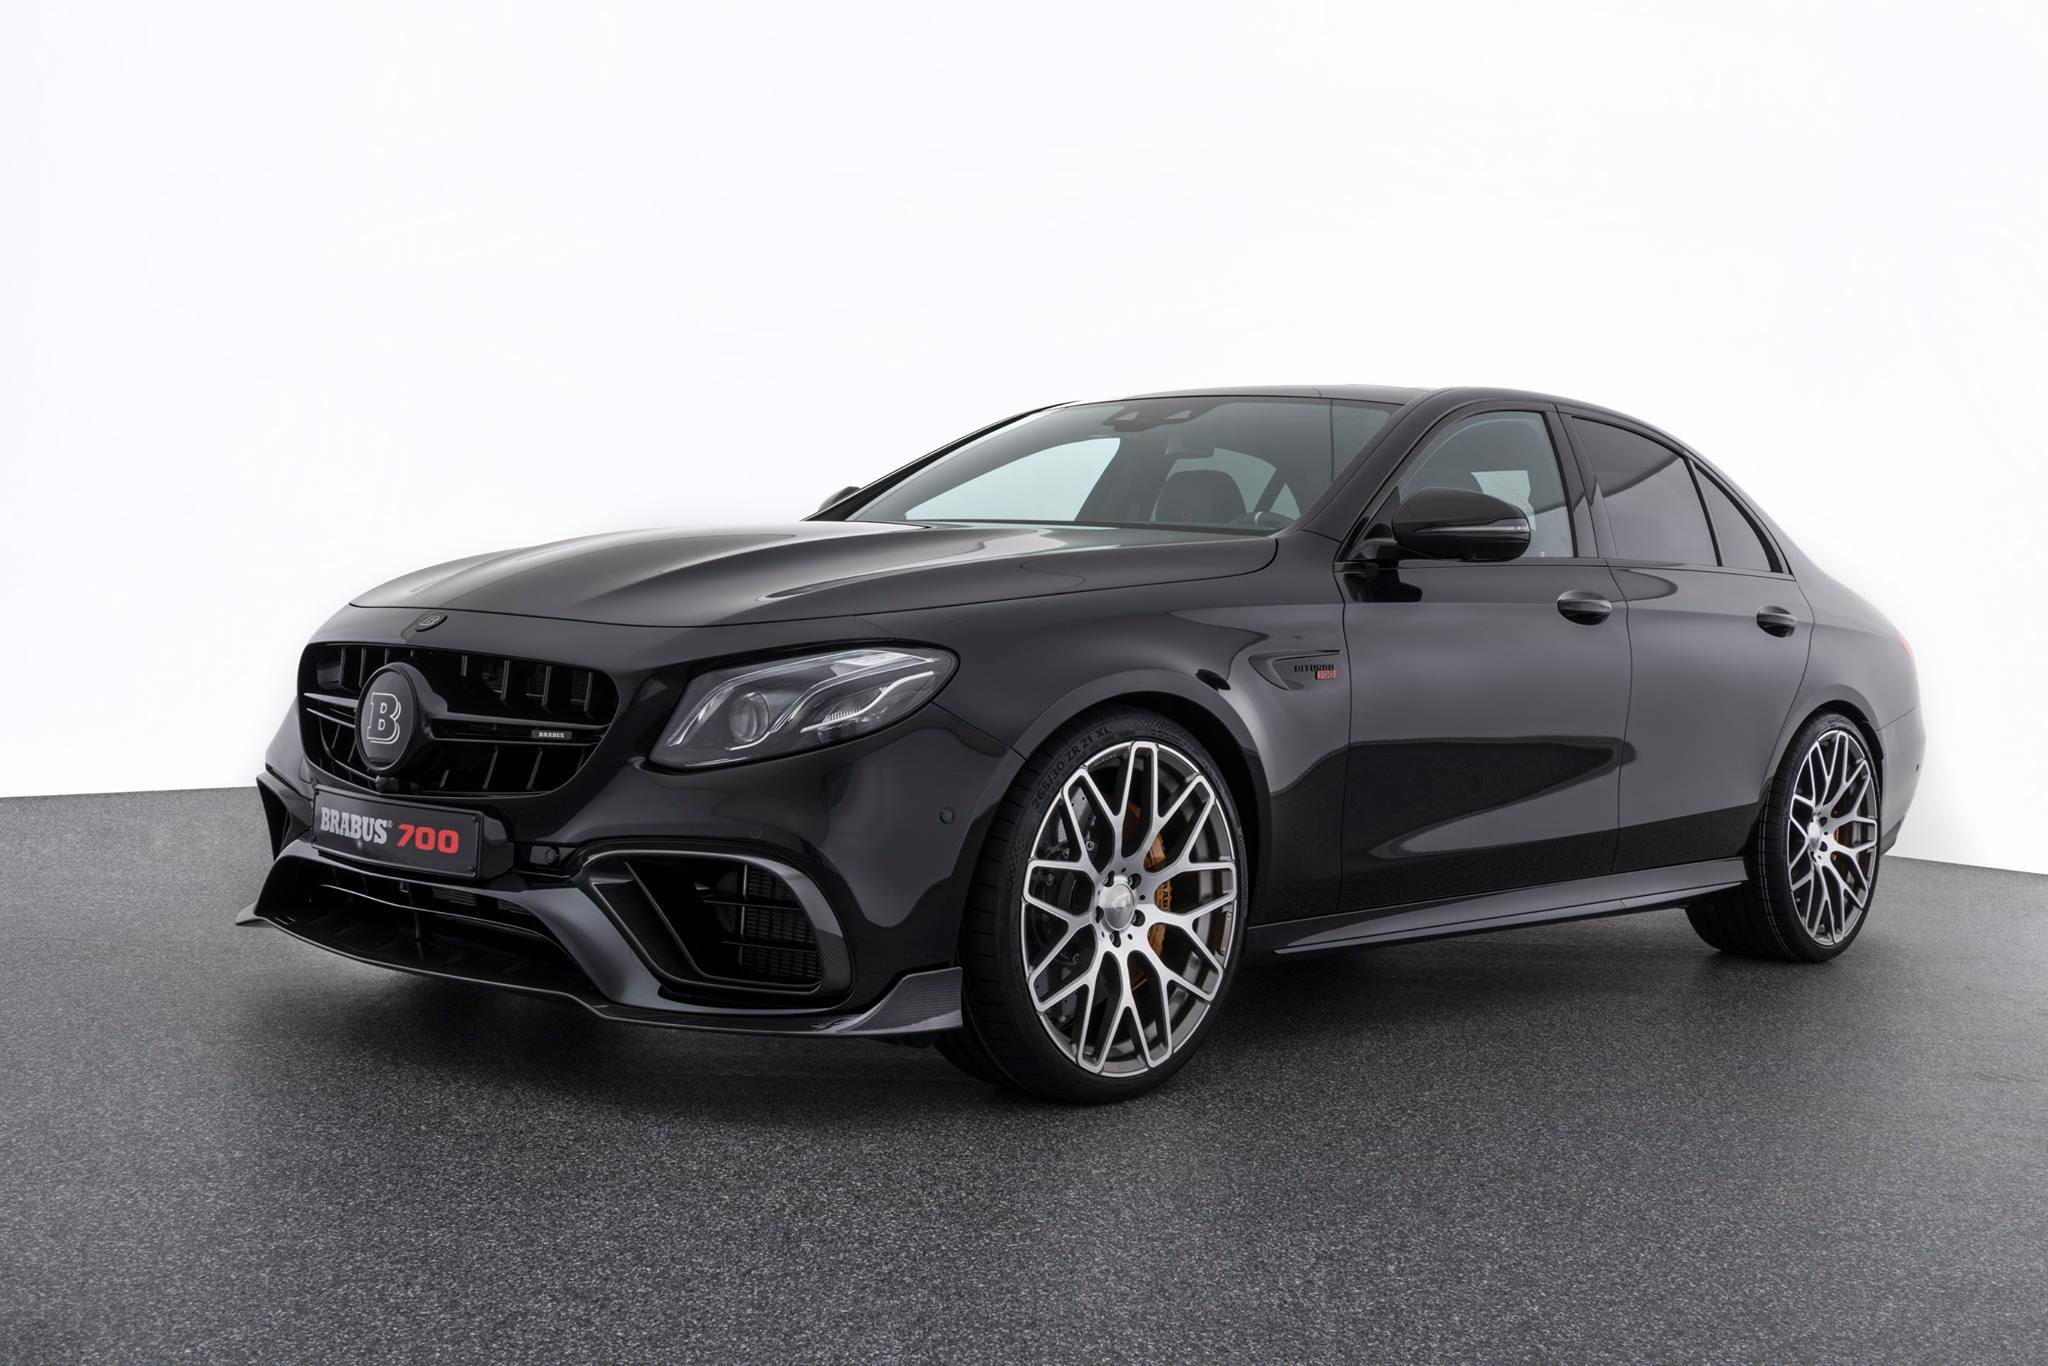 brabus tuned mercedes amg e63 debuts with 700 hp and 950. Black Bedroom Furniture Sets. Home Design Ideas